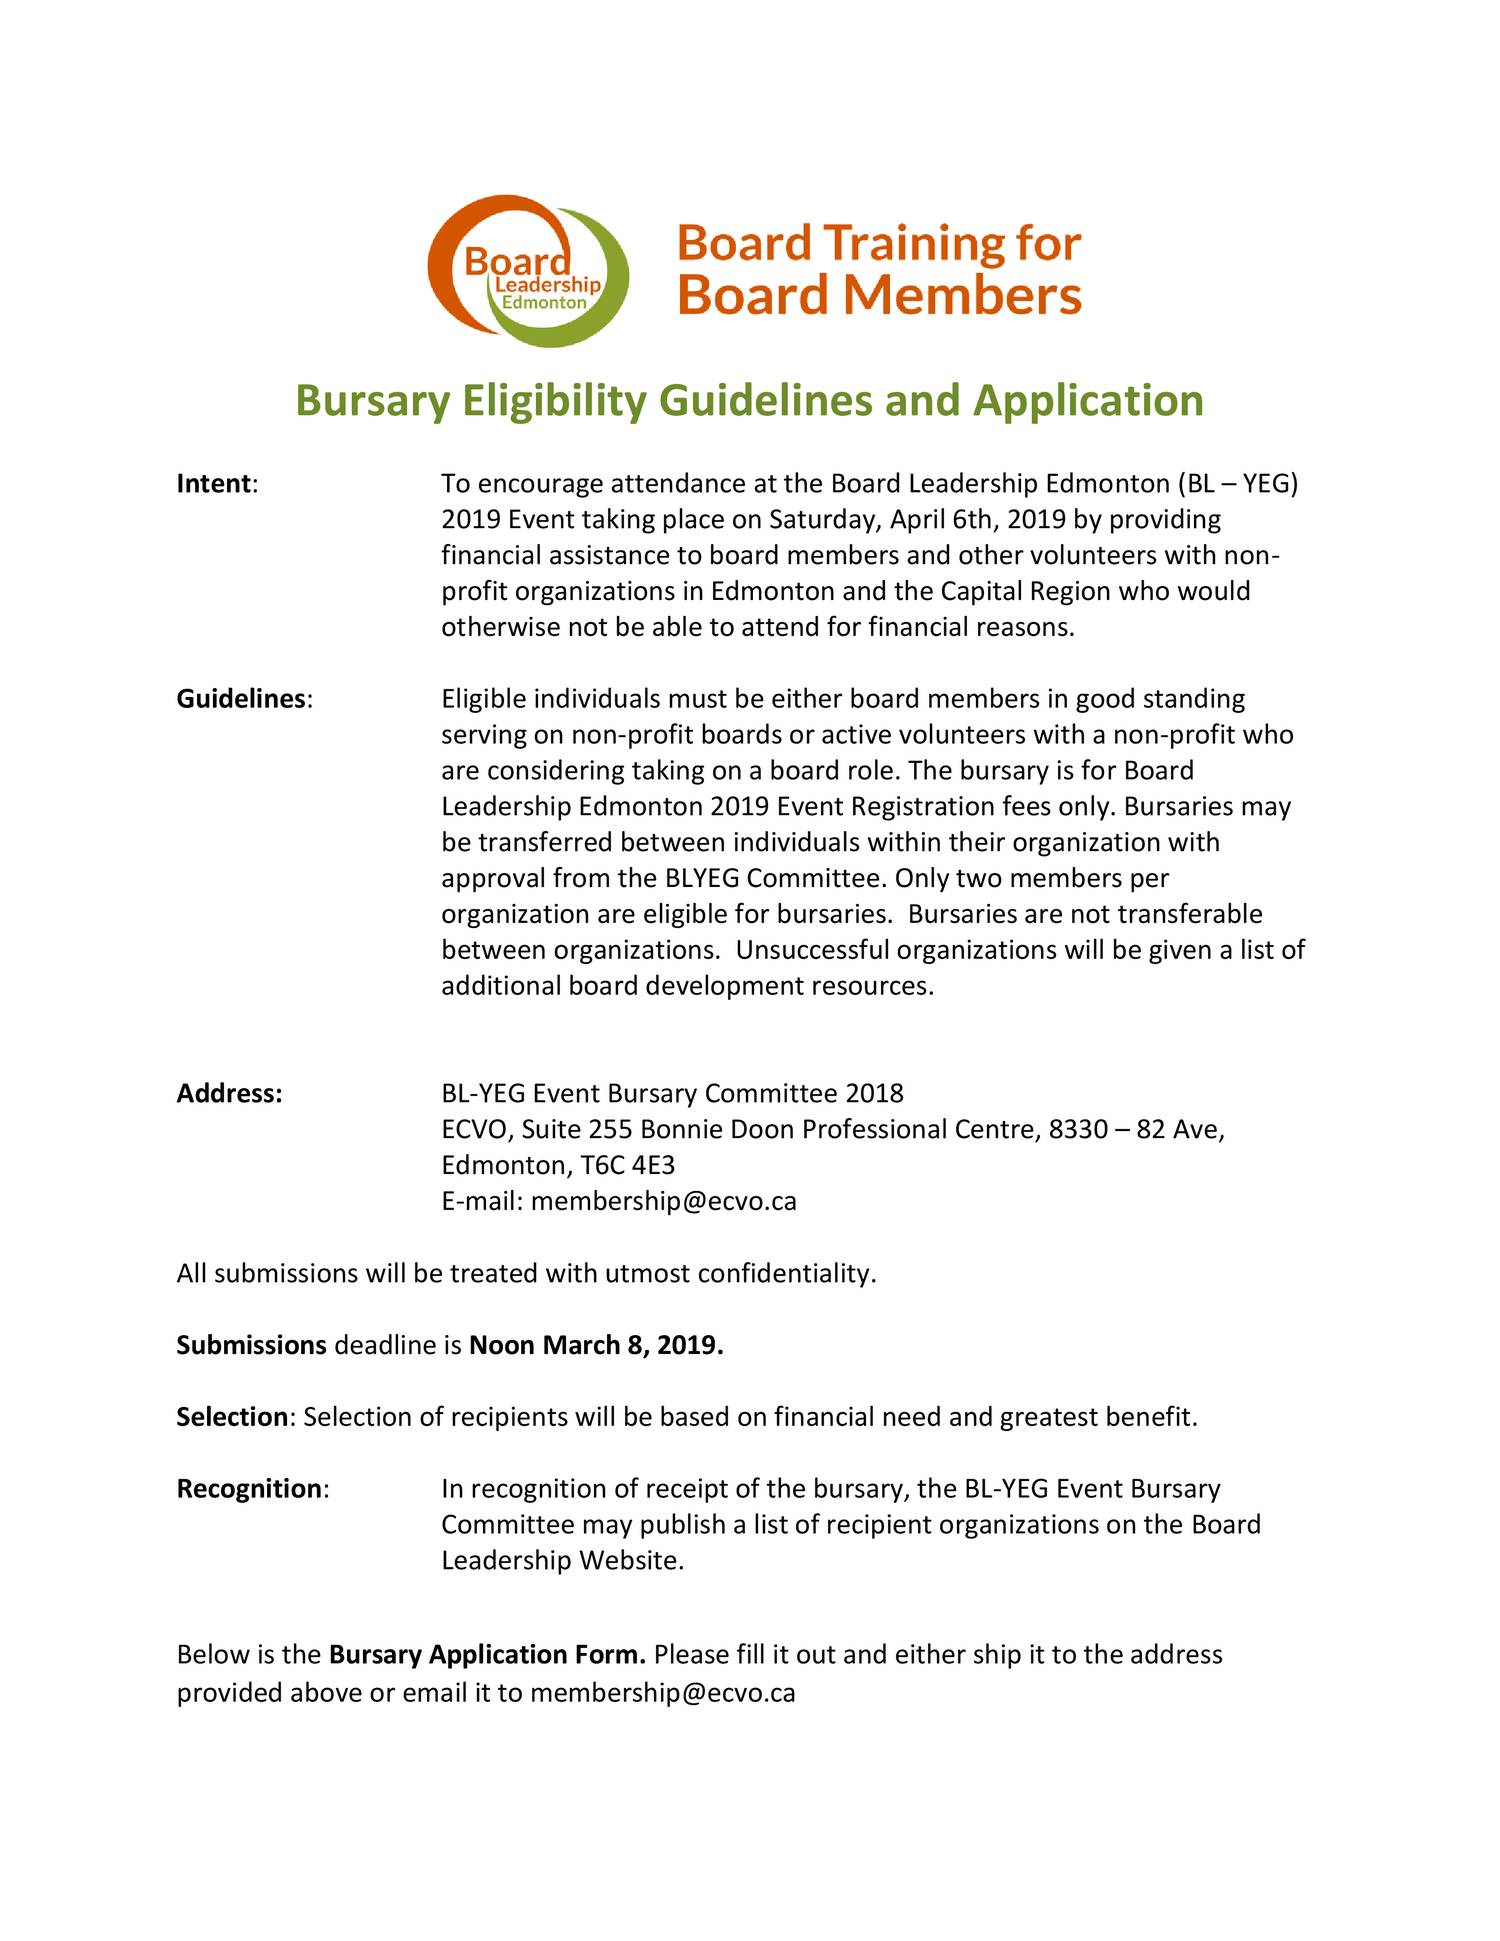 Bursary Eligibility Guidelines And Application Pdf Docdroid